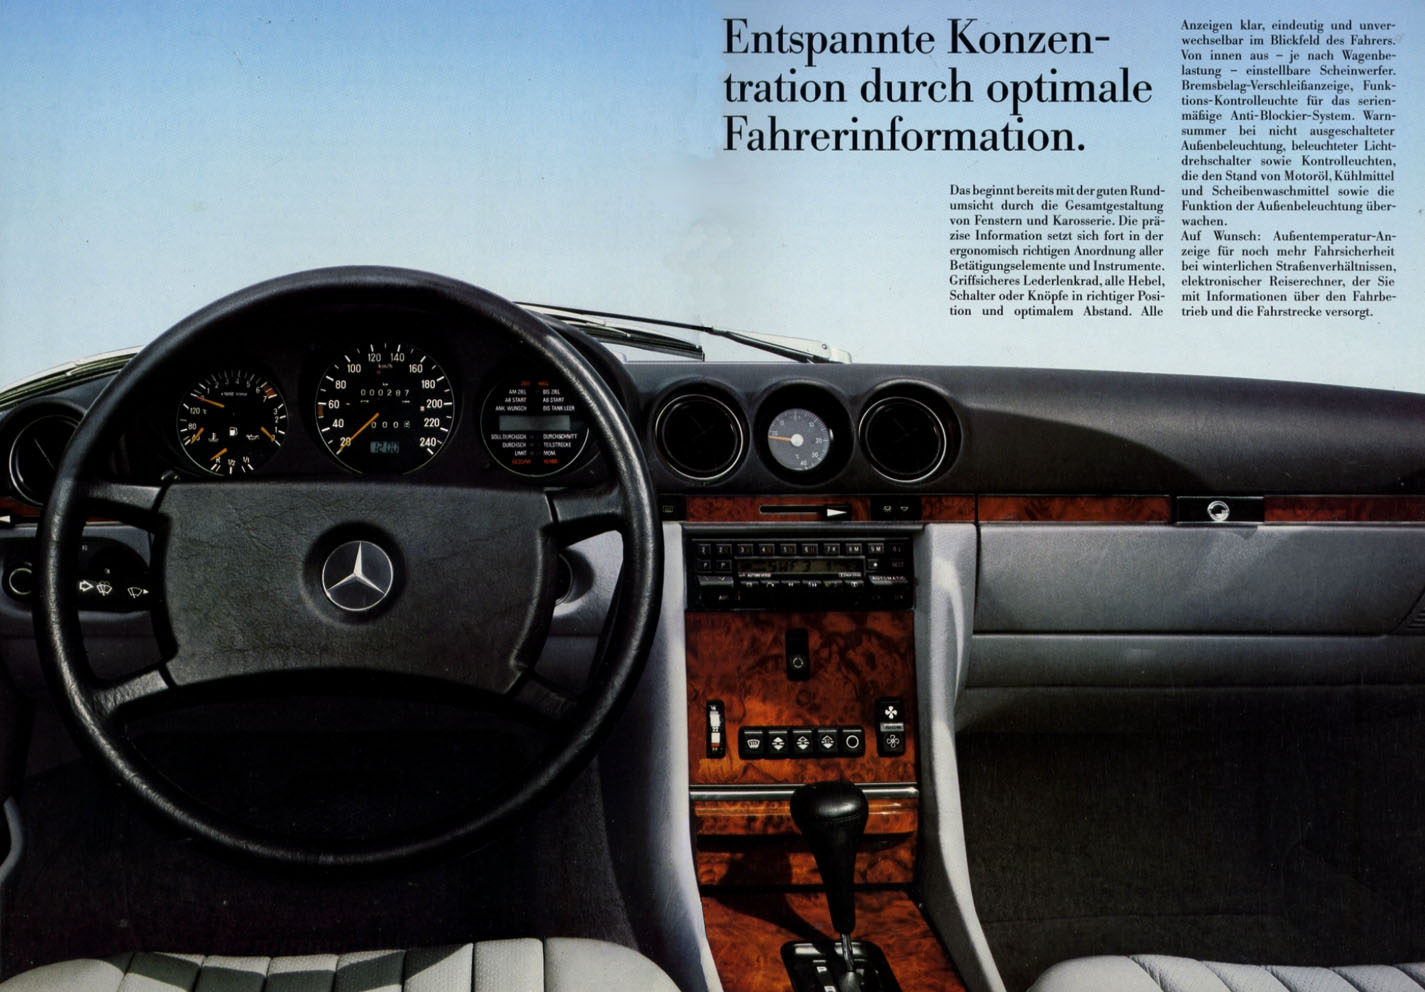 mercedes sl 1987 tableau de bord 01 echoretro. Black Bedroom Furniture Sets. Home Design Ideas